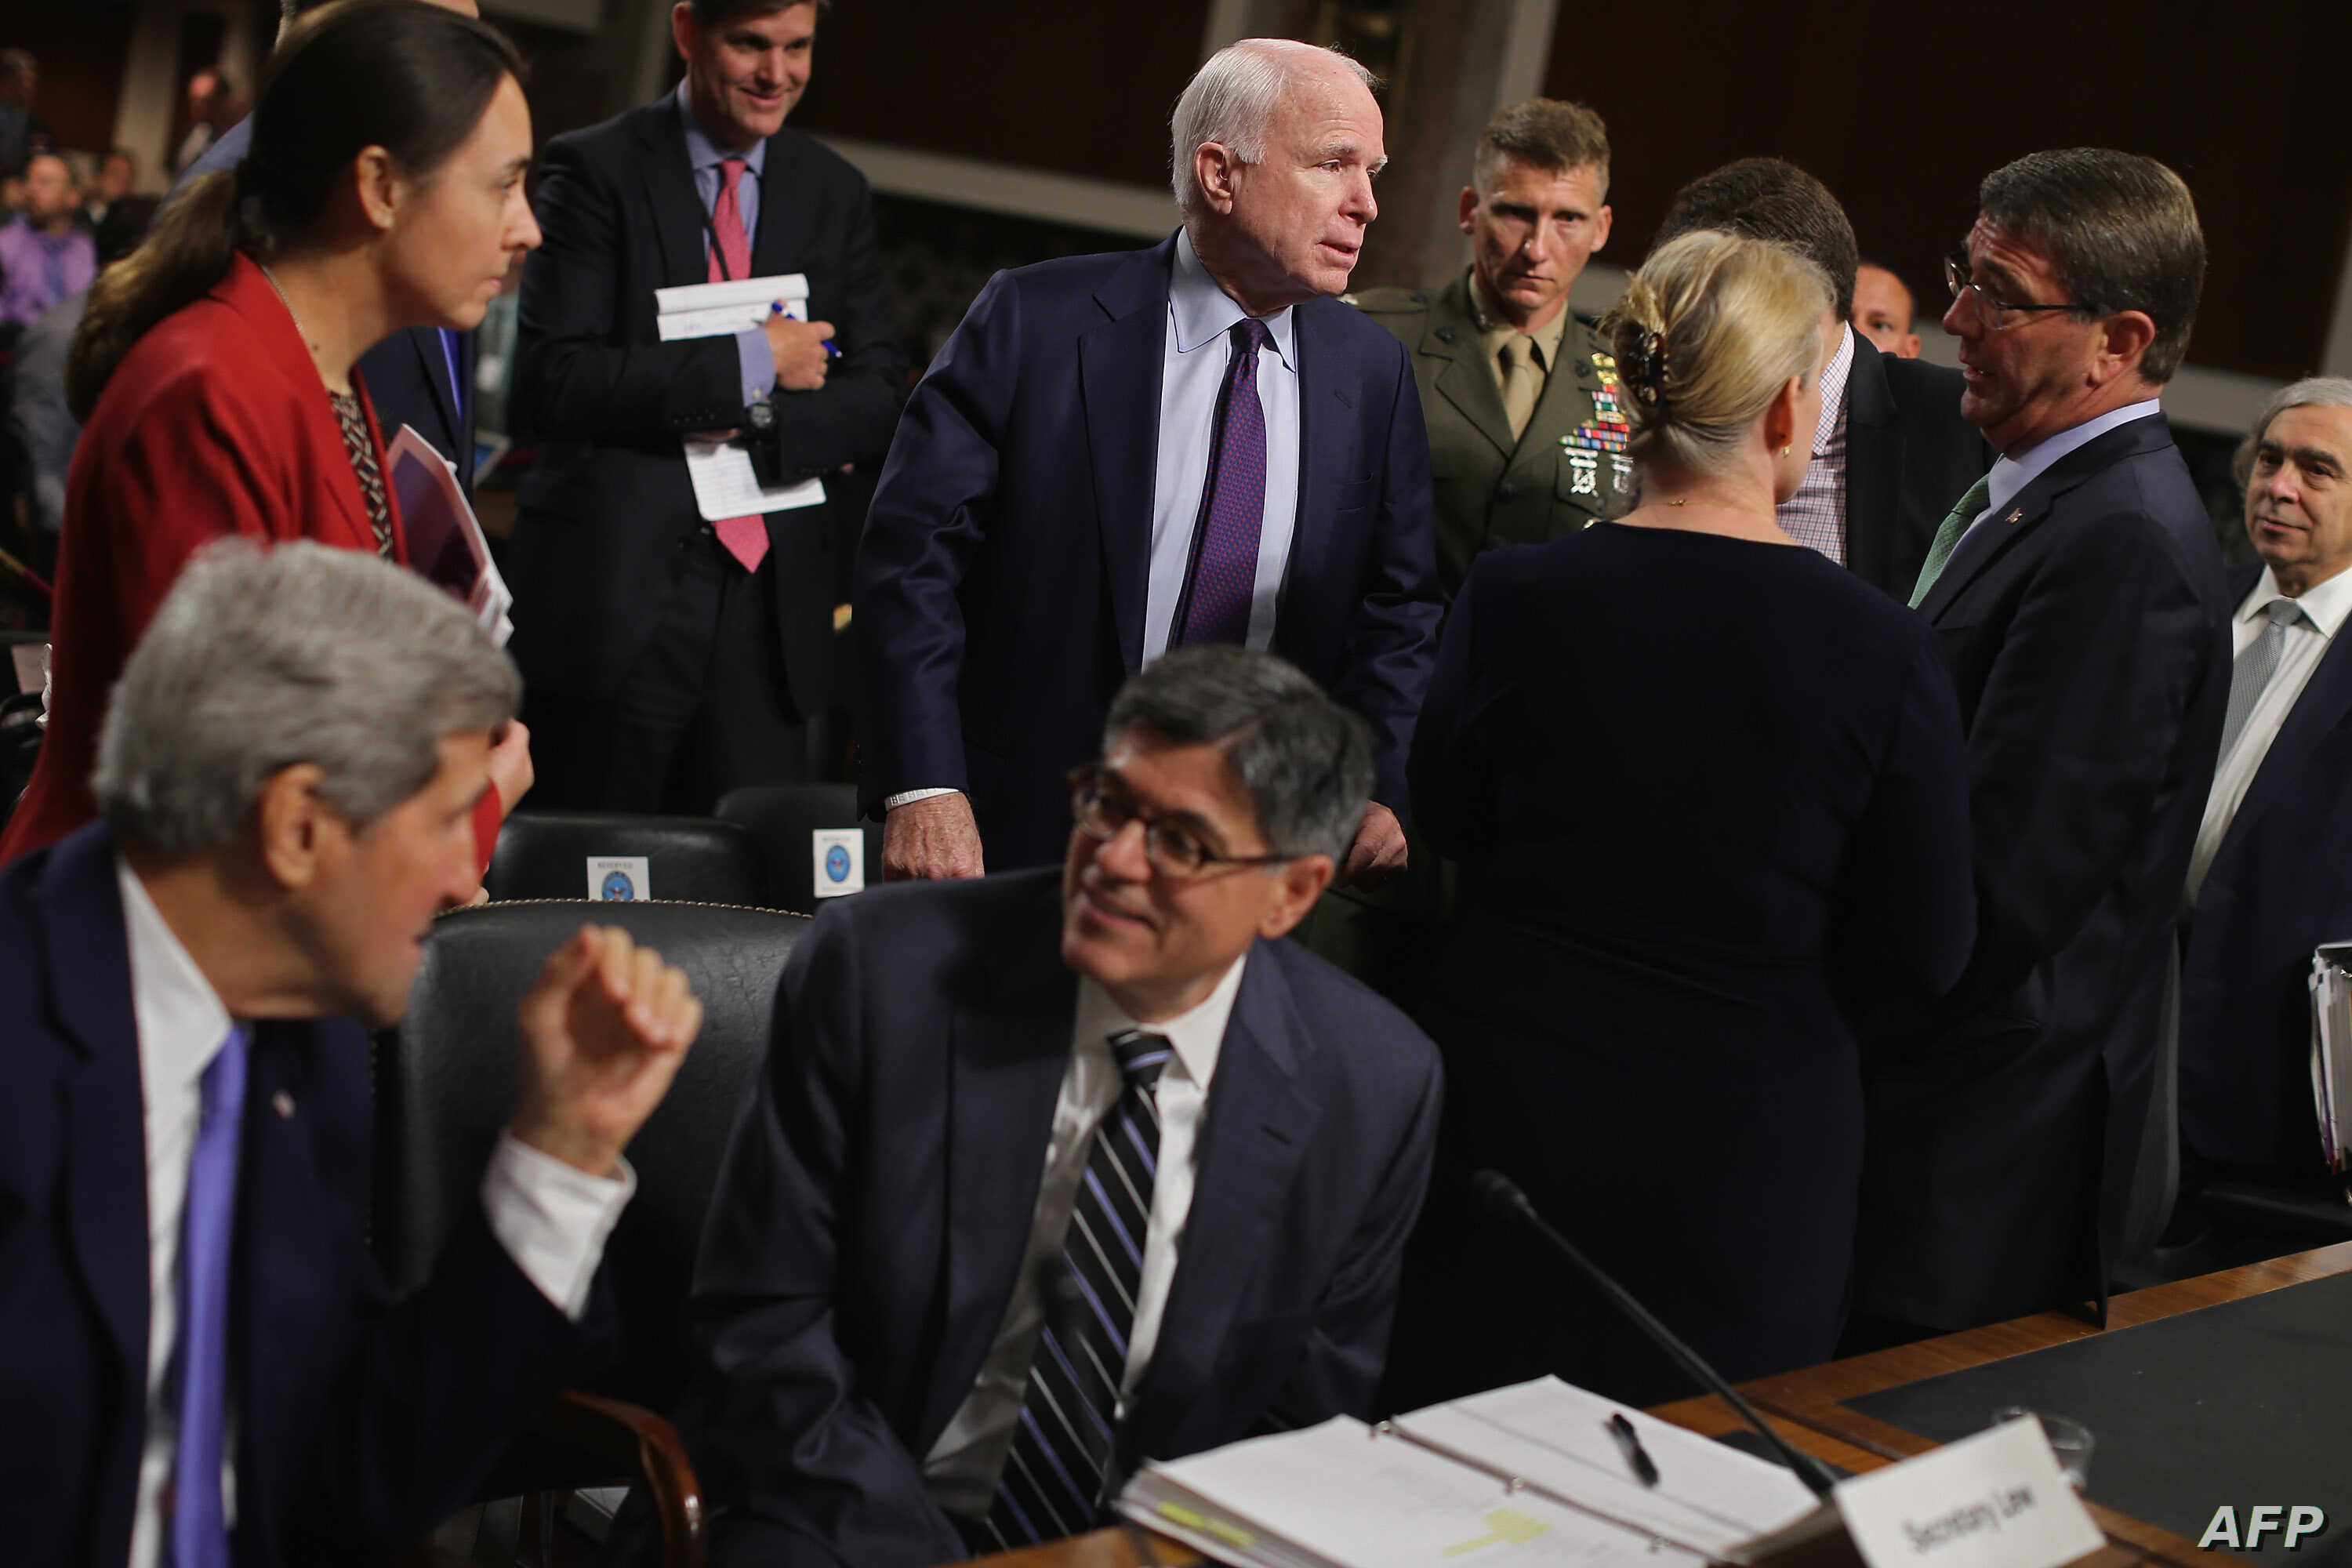 Senate Armed Services Committee Chairman John McCain, center, talks with, from left, Secretary of State John Kerry, Treasury Secretary Jacob Lew, Senator Kirsten Gillibrand, Defense Secretary Ashton Carter and Energy Secretary Ernest Moniz on Capitol...